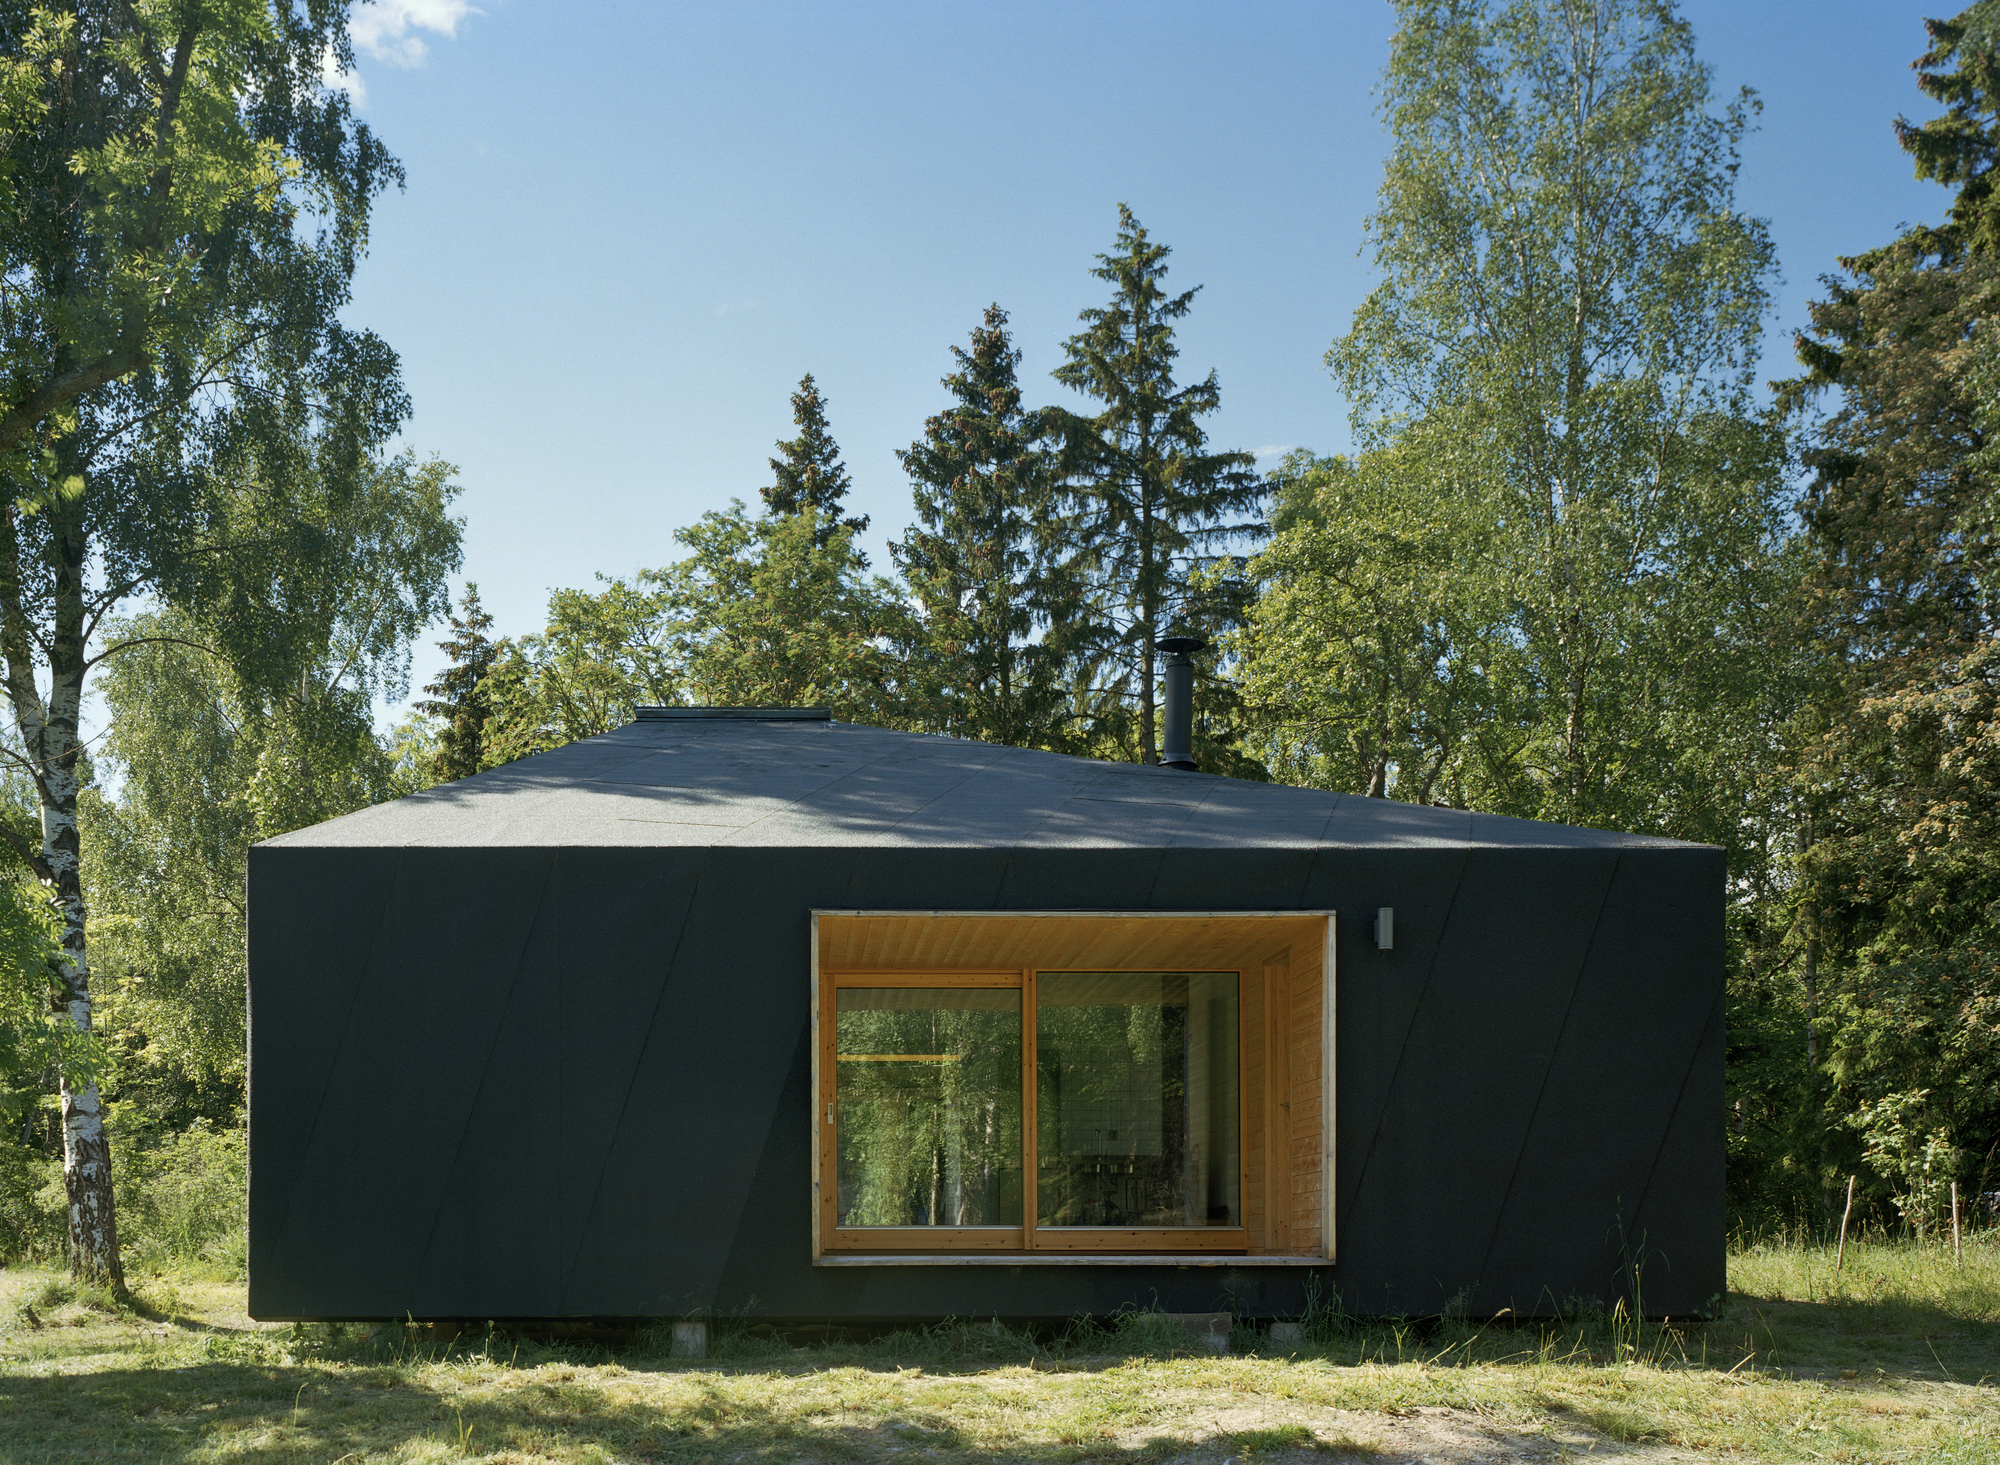 Dark exterior of the small summer house in woods allows it to blend in with the backdrop